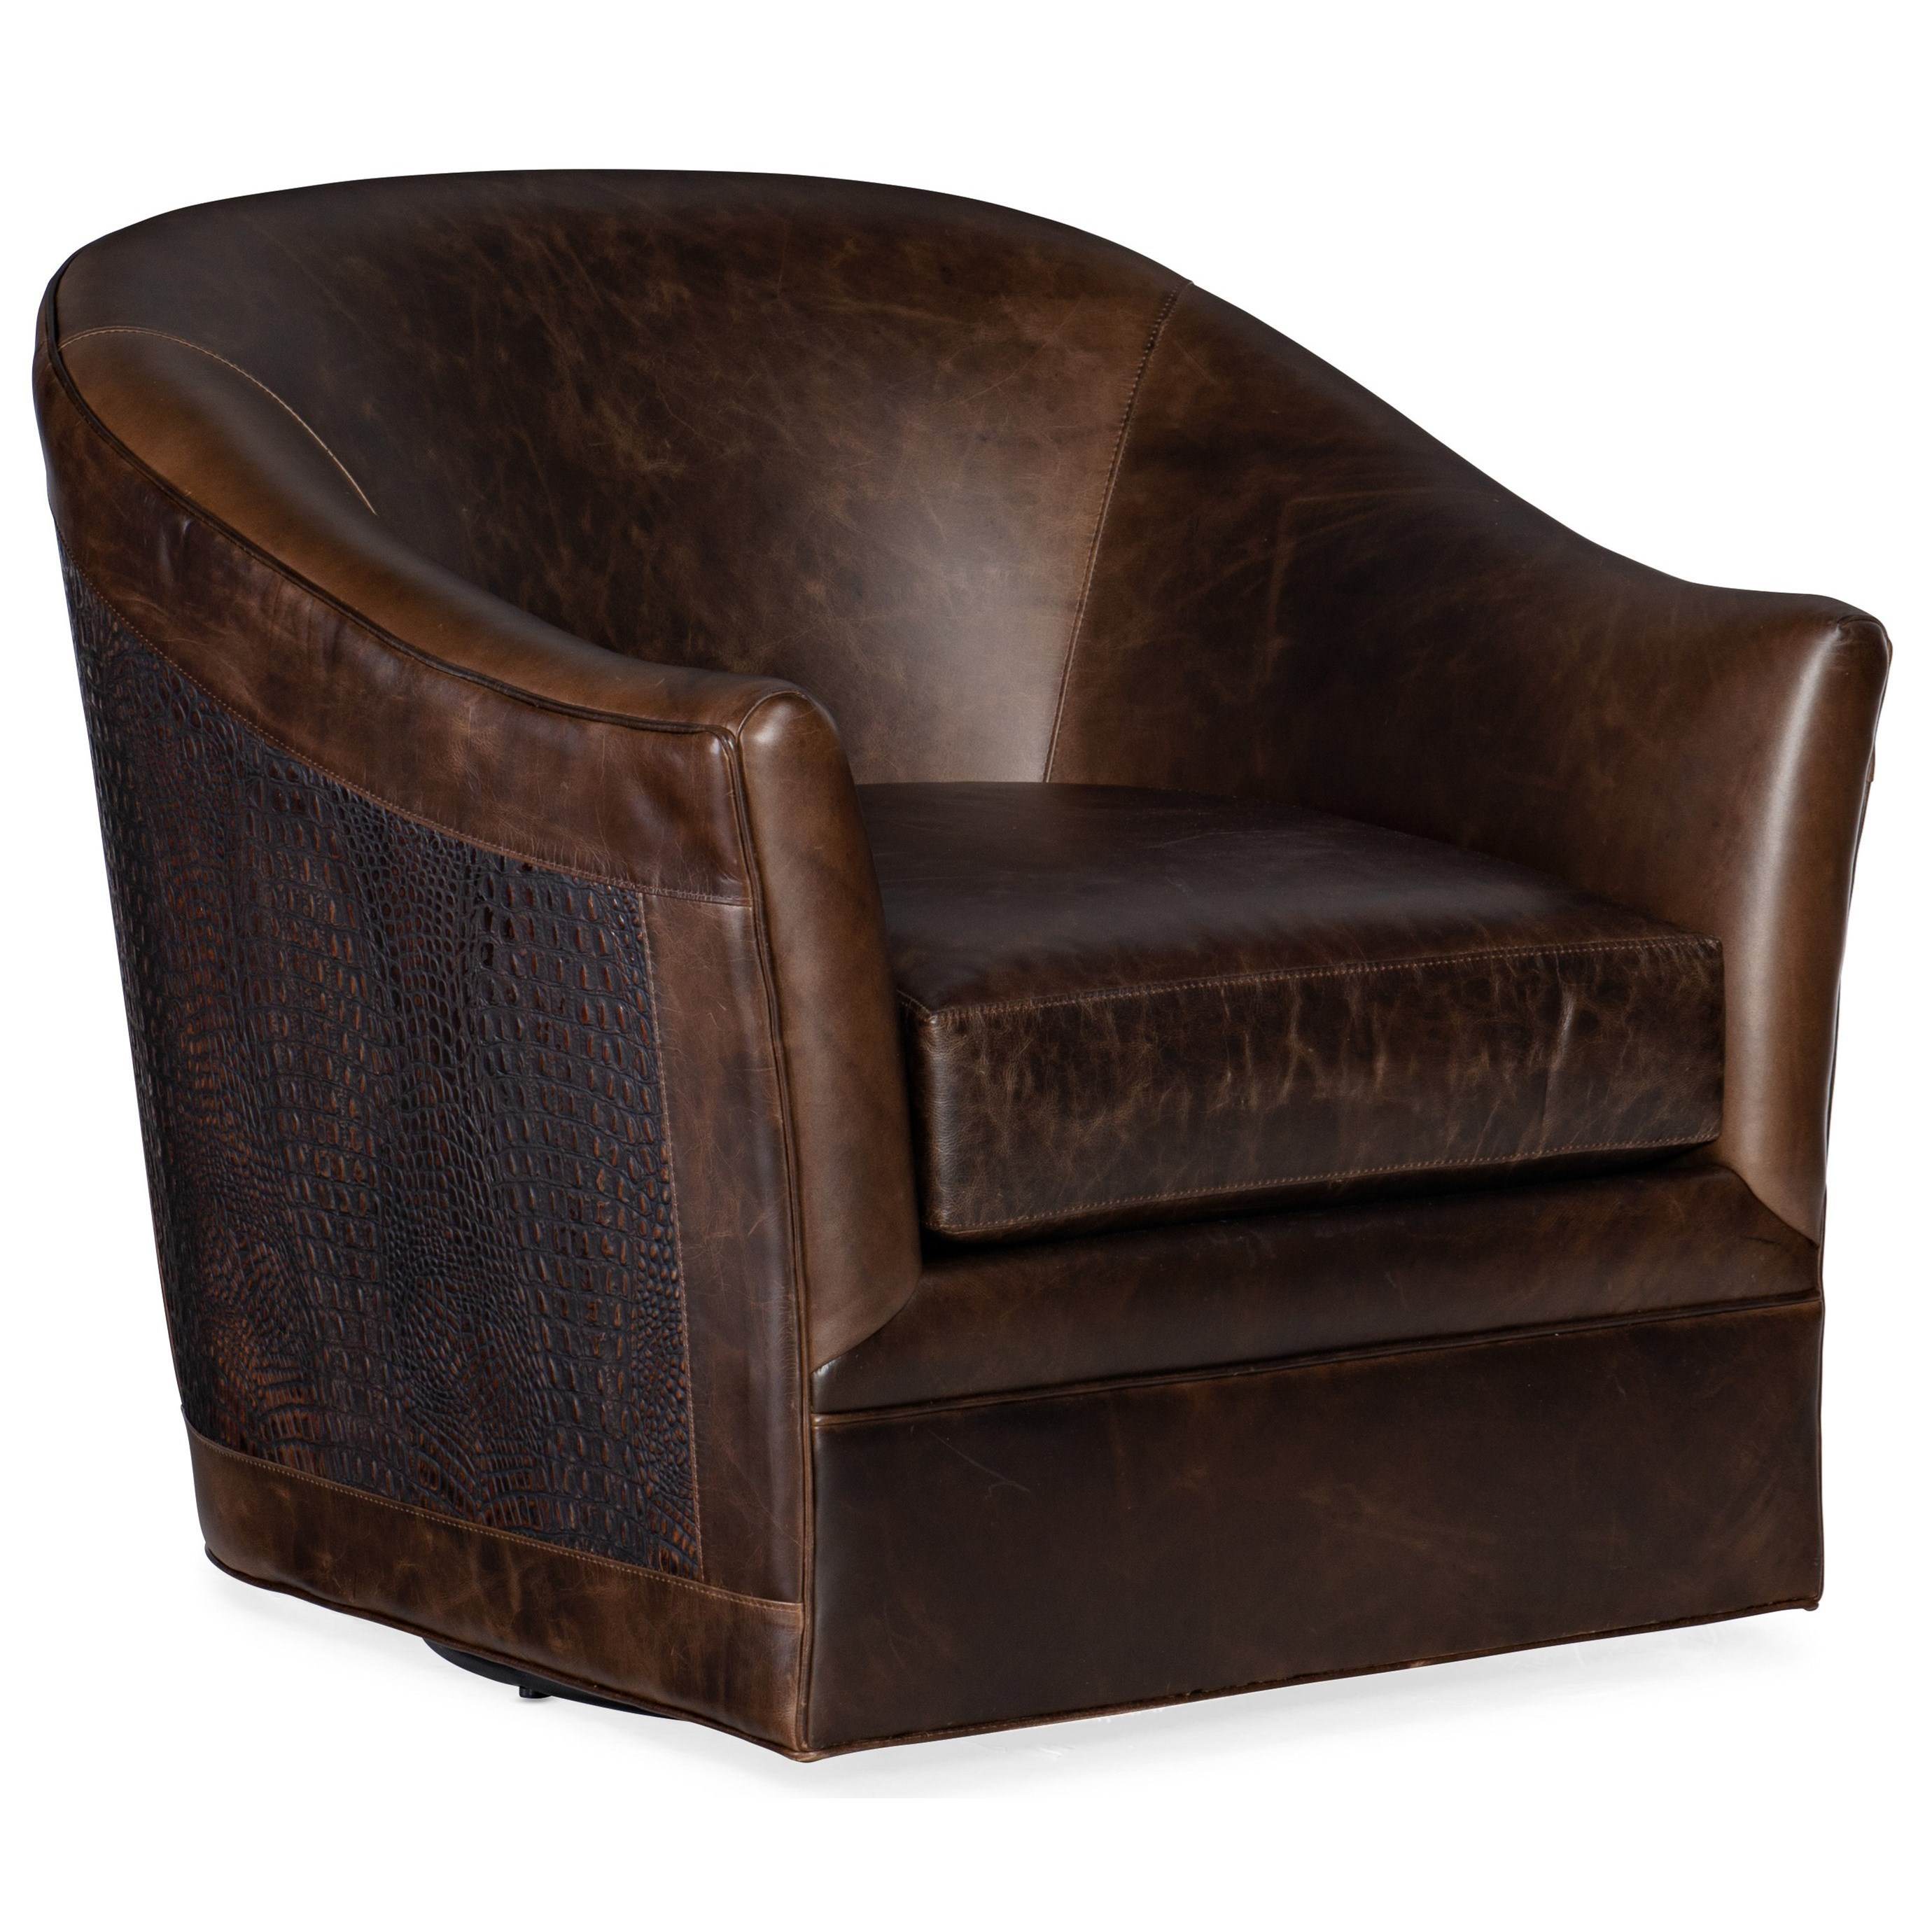 Club Chairs Morrison Swivel Club Chair by Hooker Furniture at Suburban Furniture